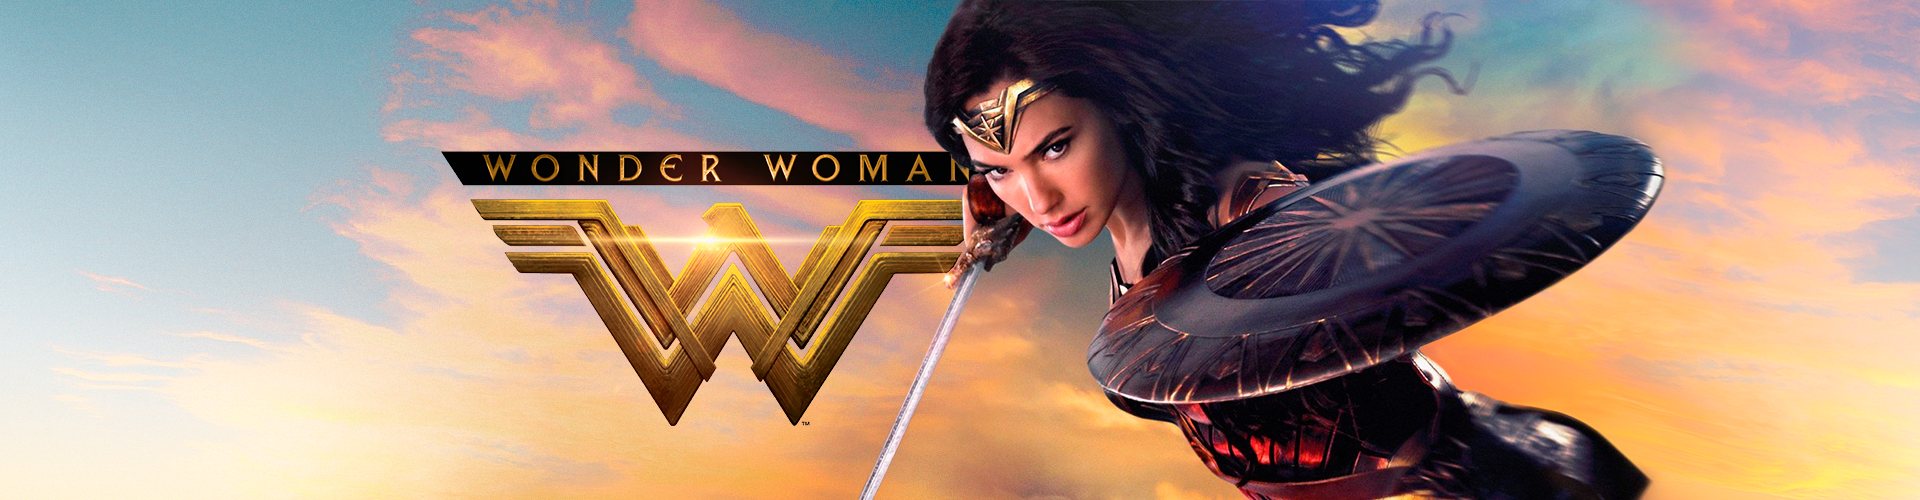 Dvd-it_slider_WonderWoman